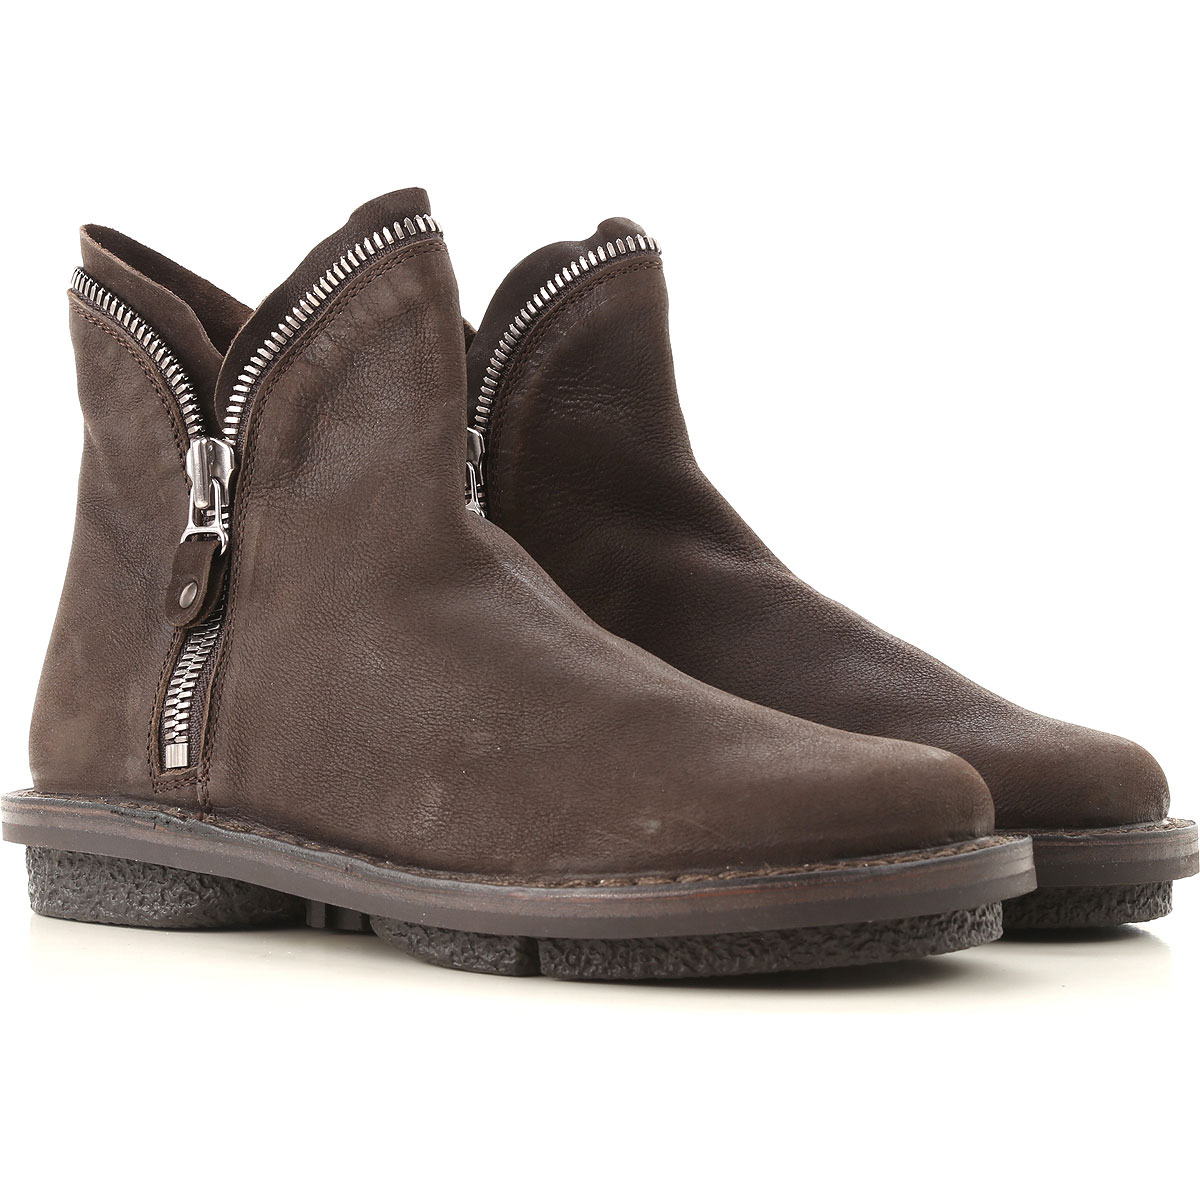 Image of Trippen Boots for Women, Booties, Coffee, Leather, 2017, 10 11 7 8 9